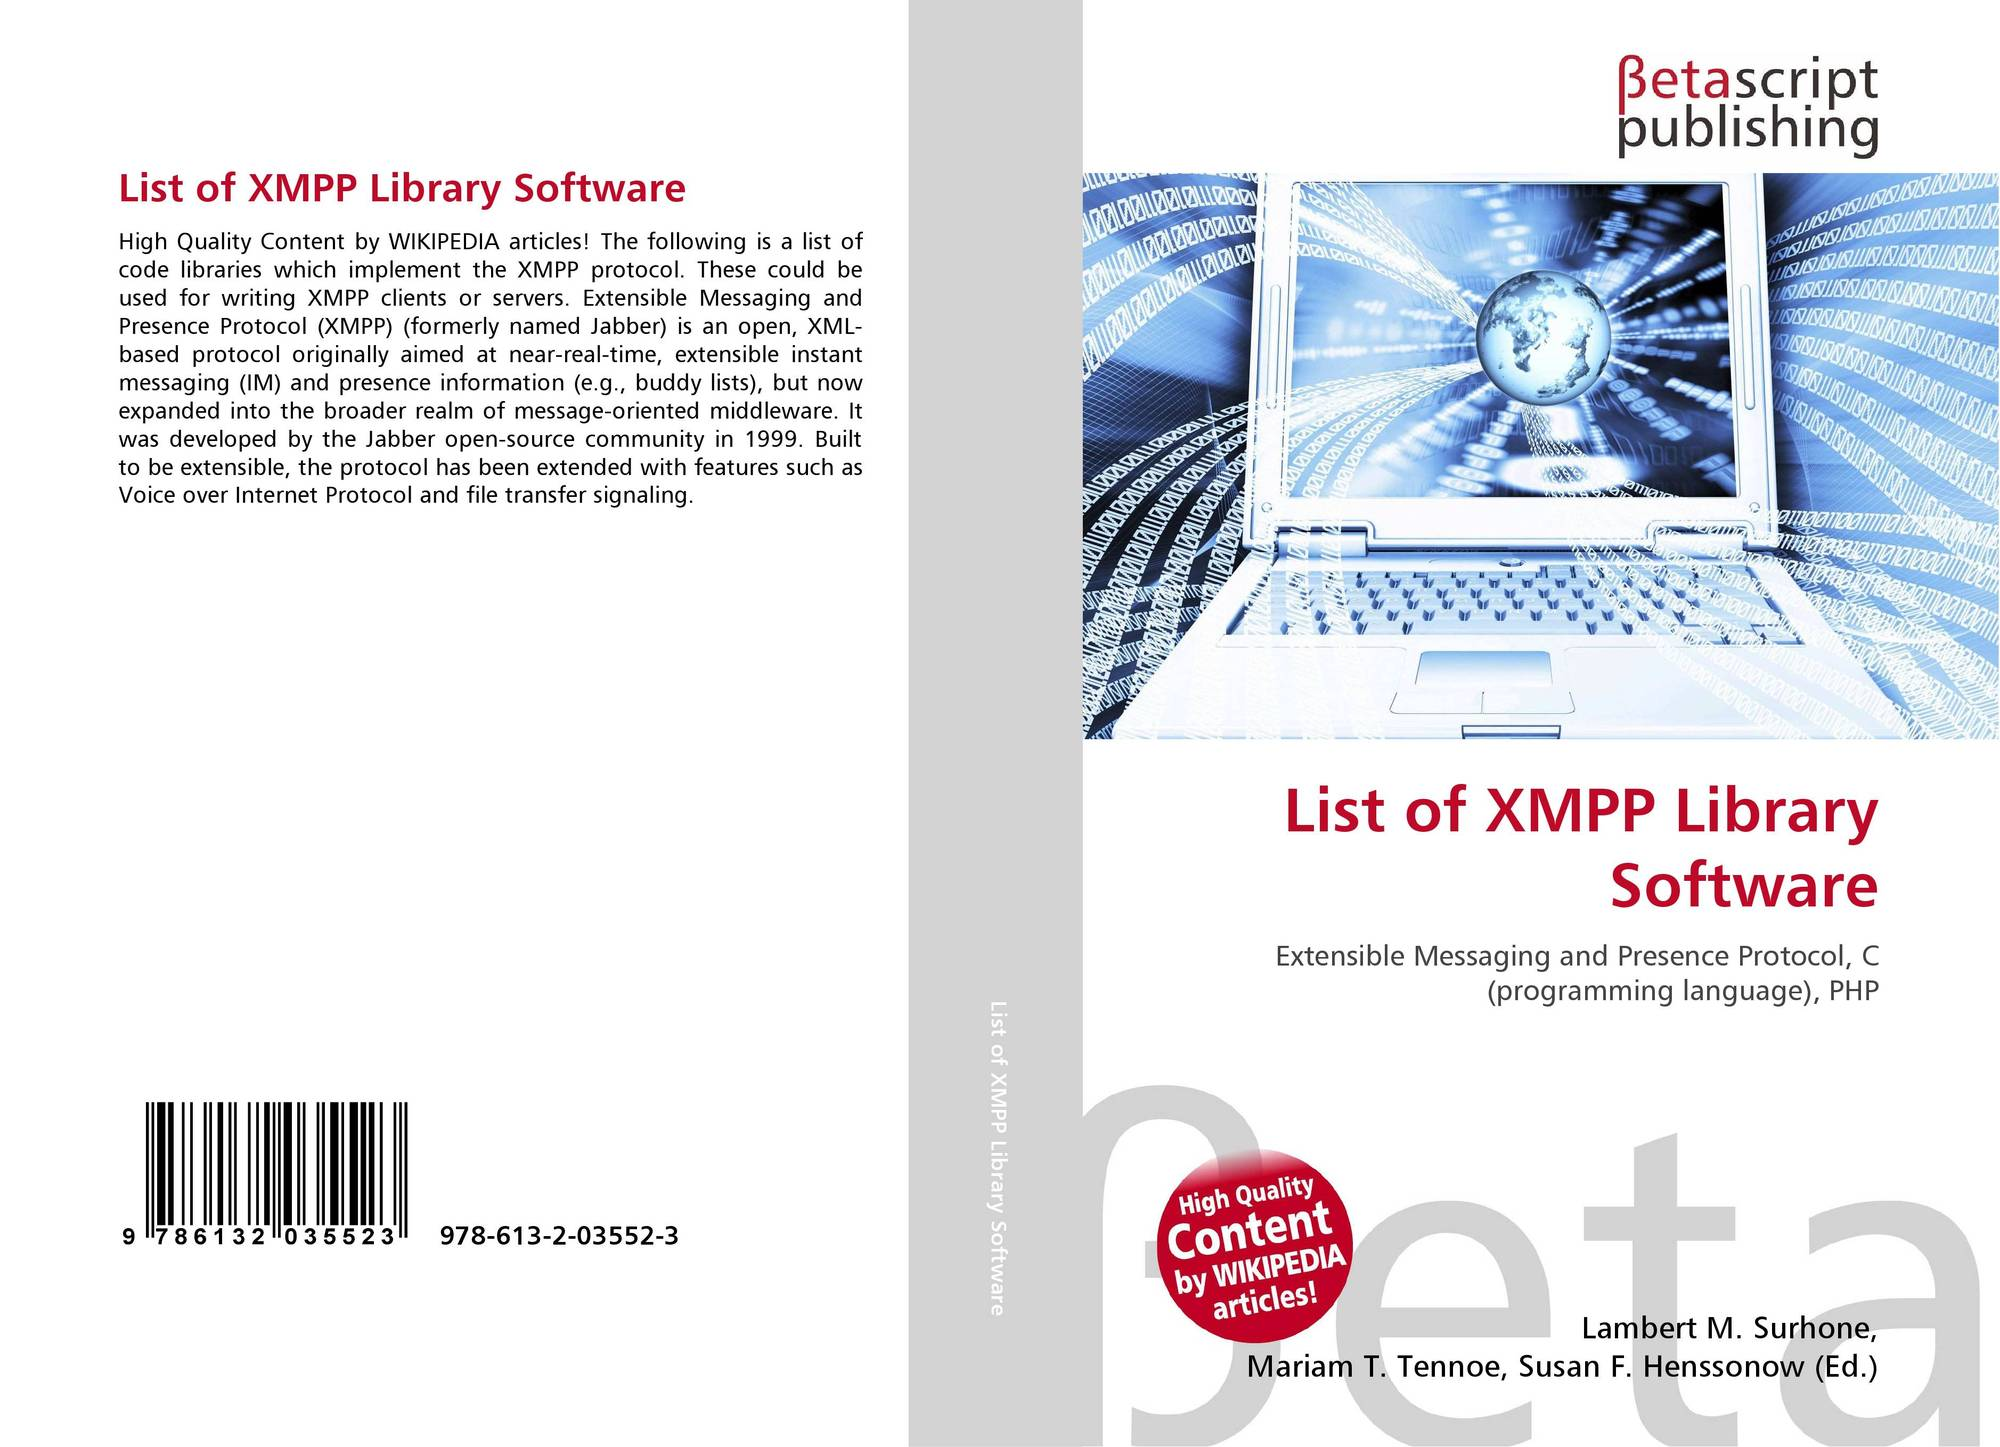 List of XMPP Library Software, 978-613-2-03552-3, 6132035524